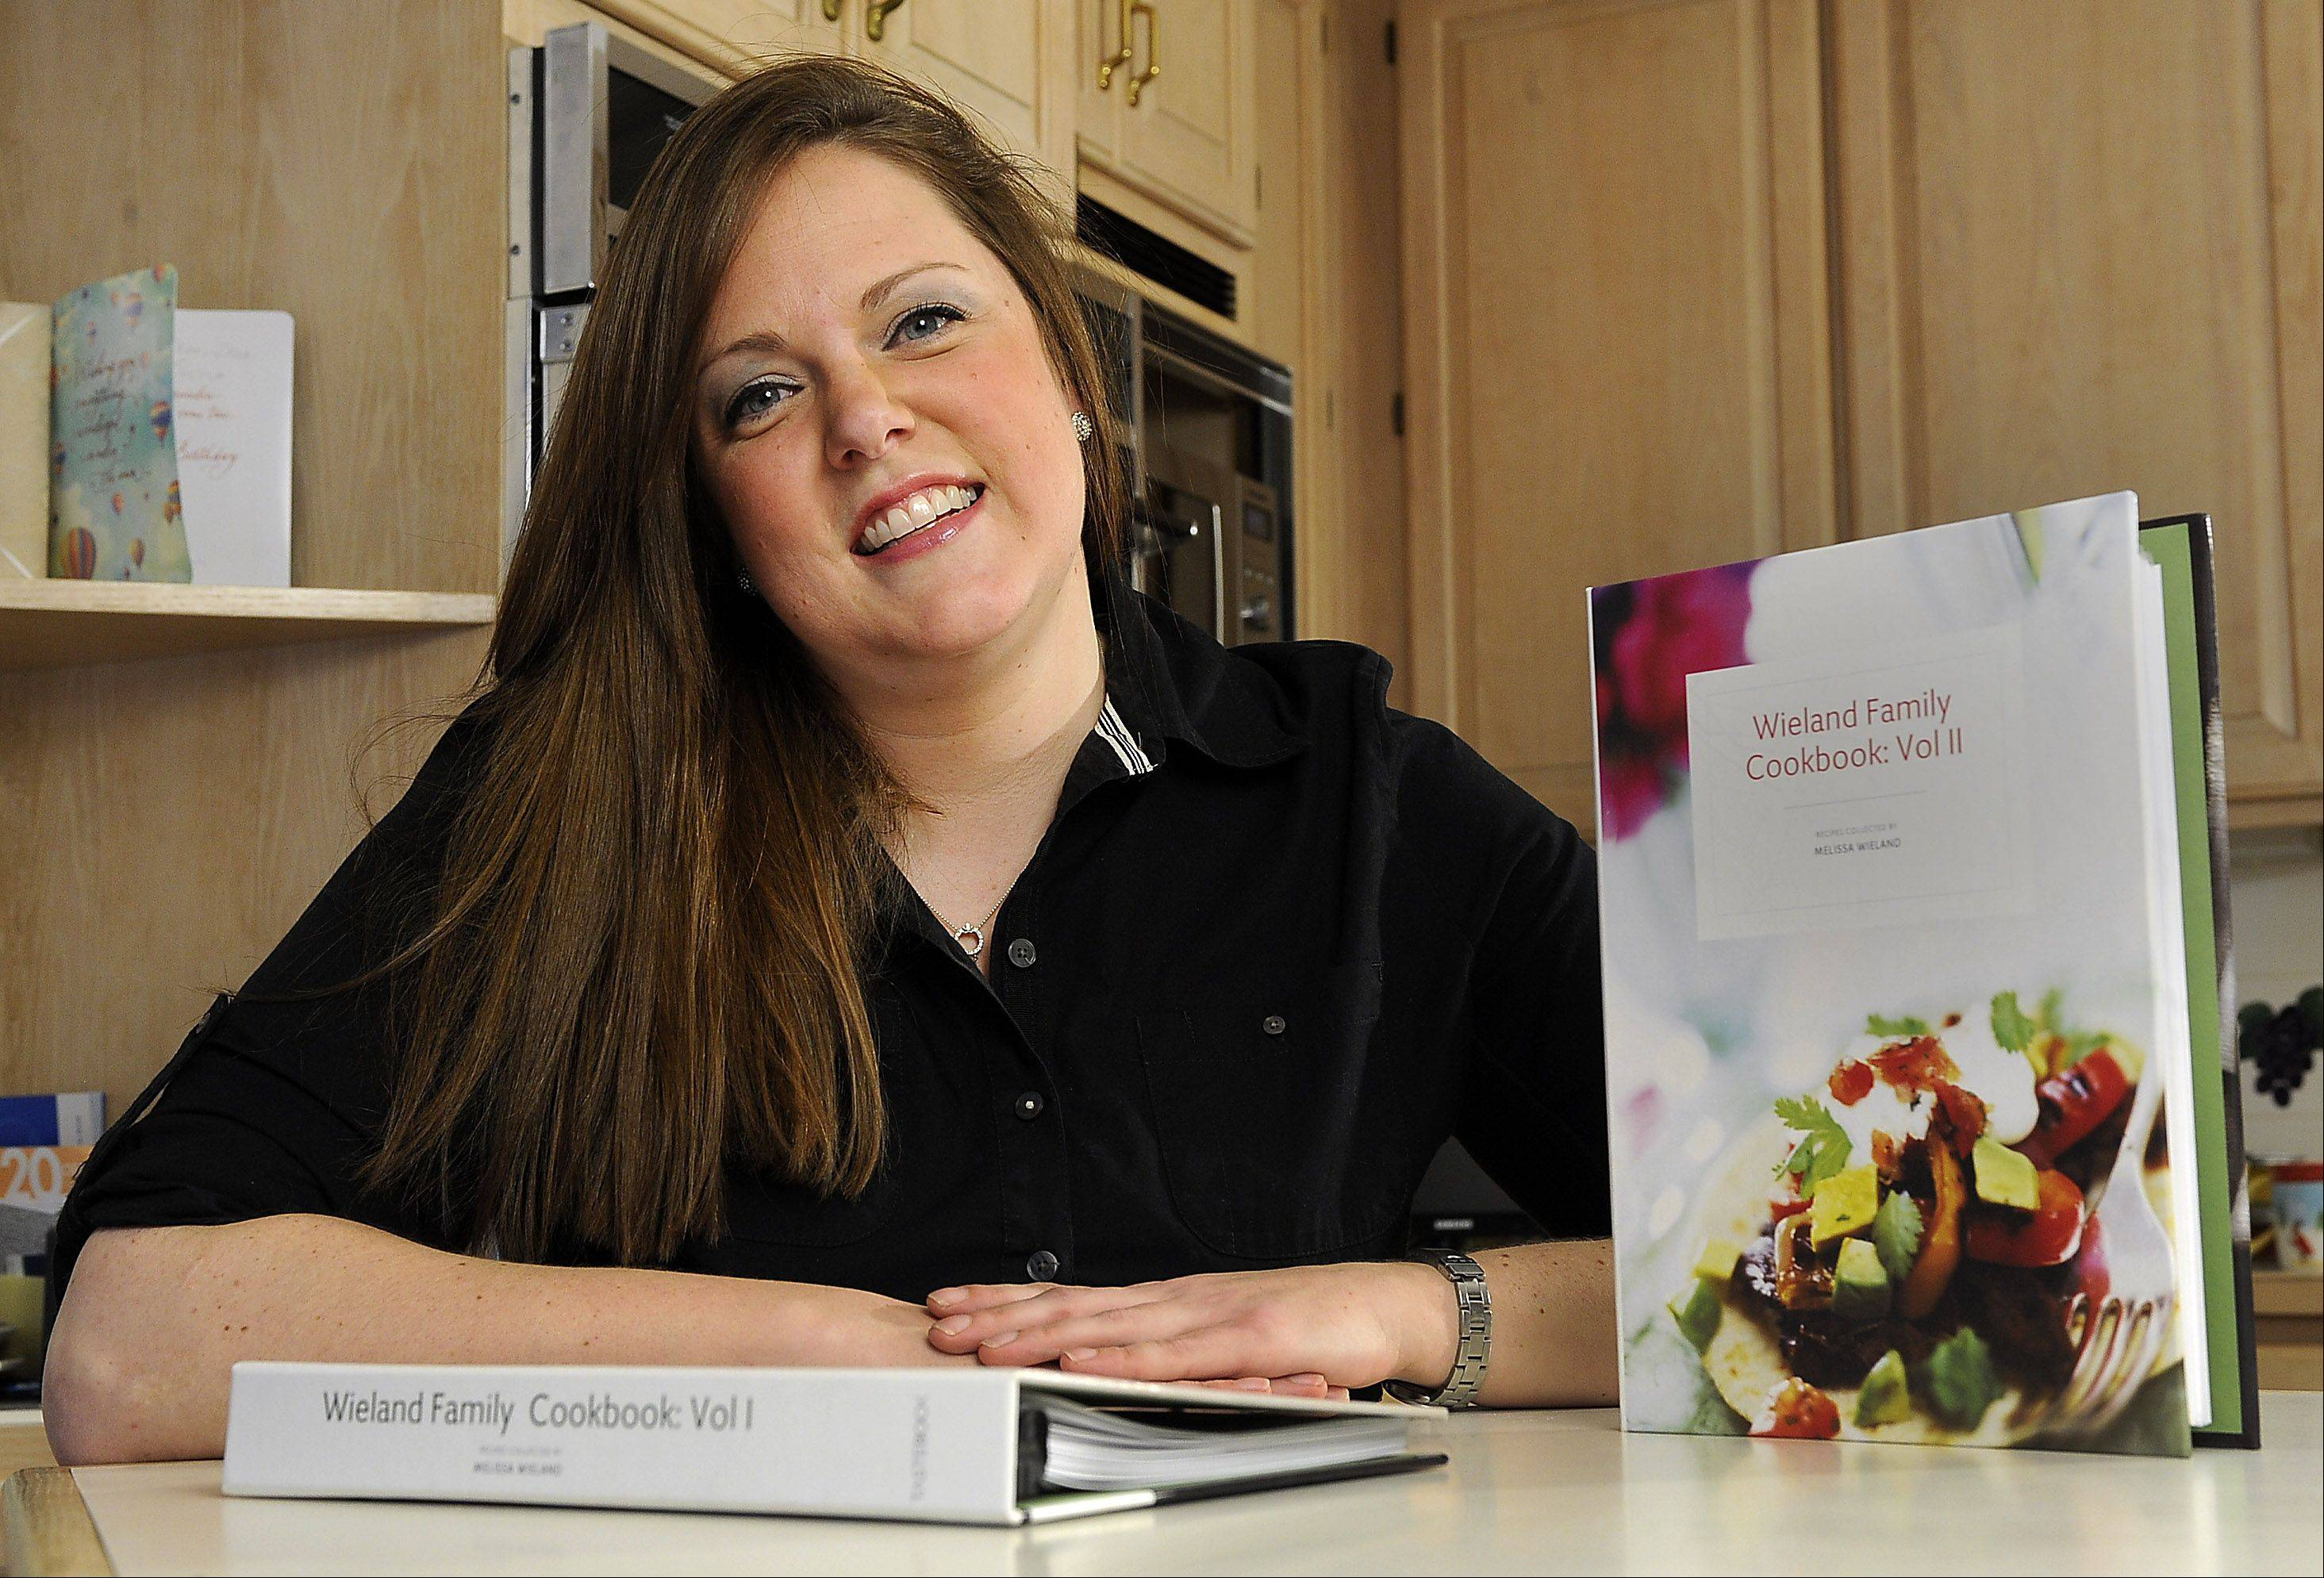 Melissa Wieland often returns to her parents' South Barrington home to cook recipes she collected for a family cookbook.